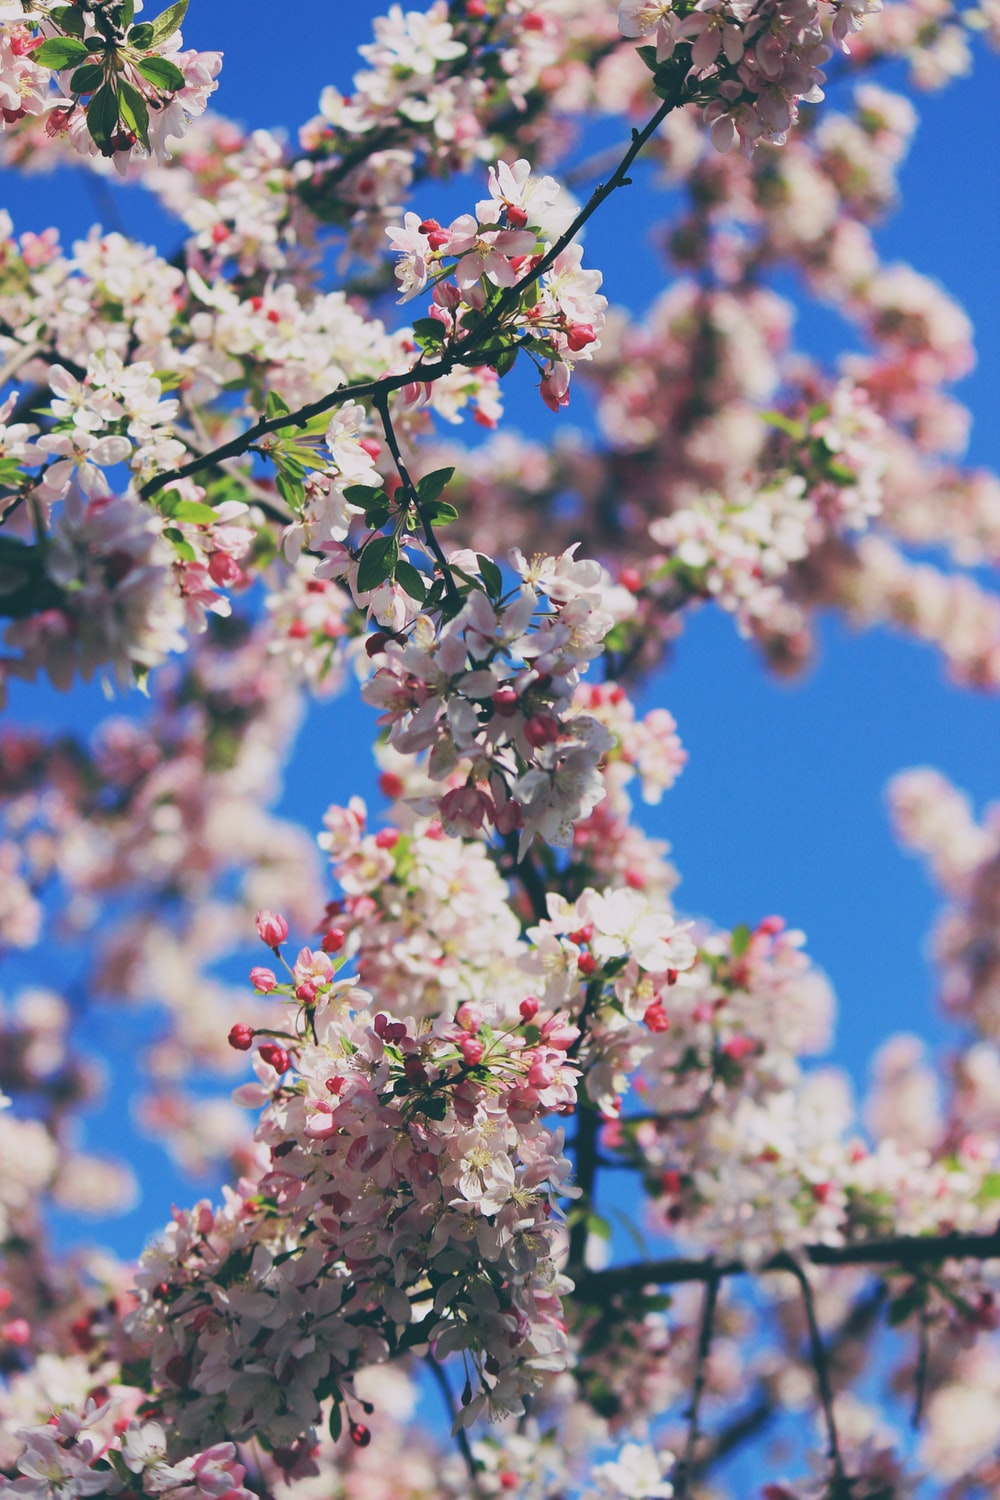 white and pink flowers in shallow focus photography